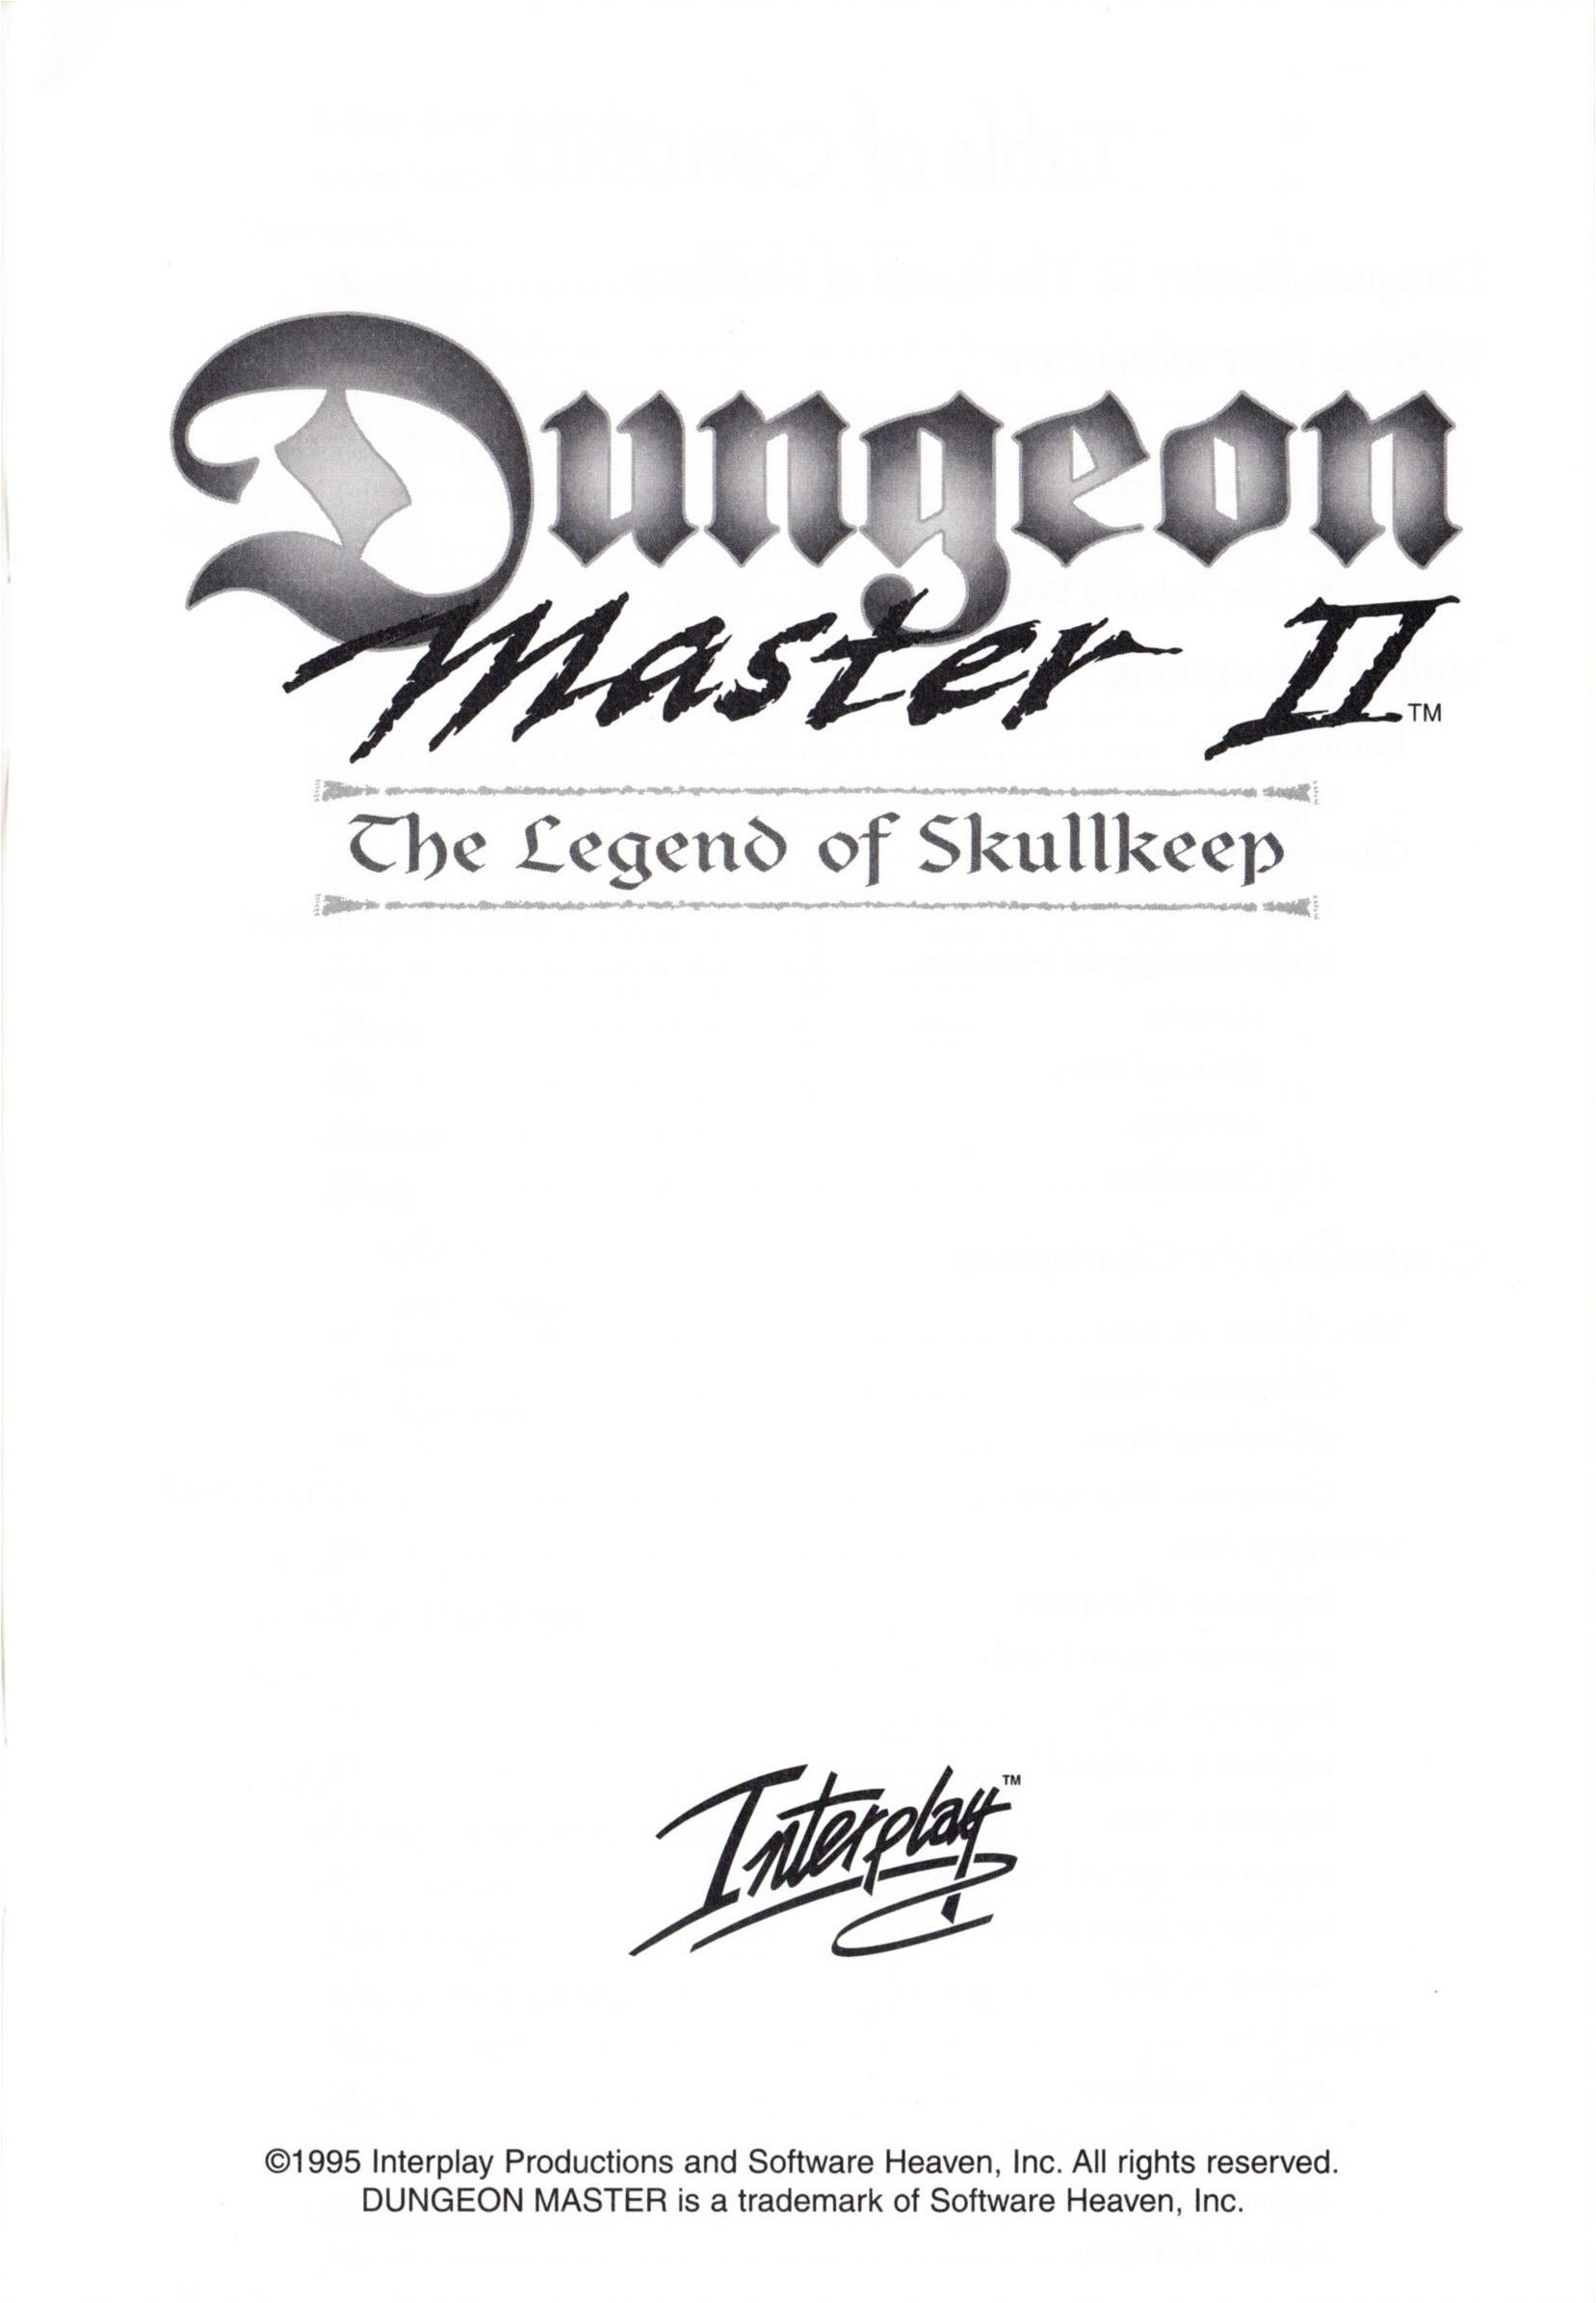 Game - Dungeon Master II - US - PC - Big Box - Manual - Page 003 - Scan